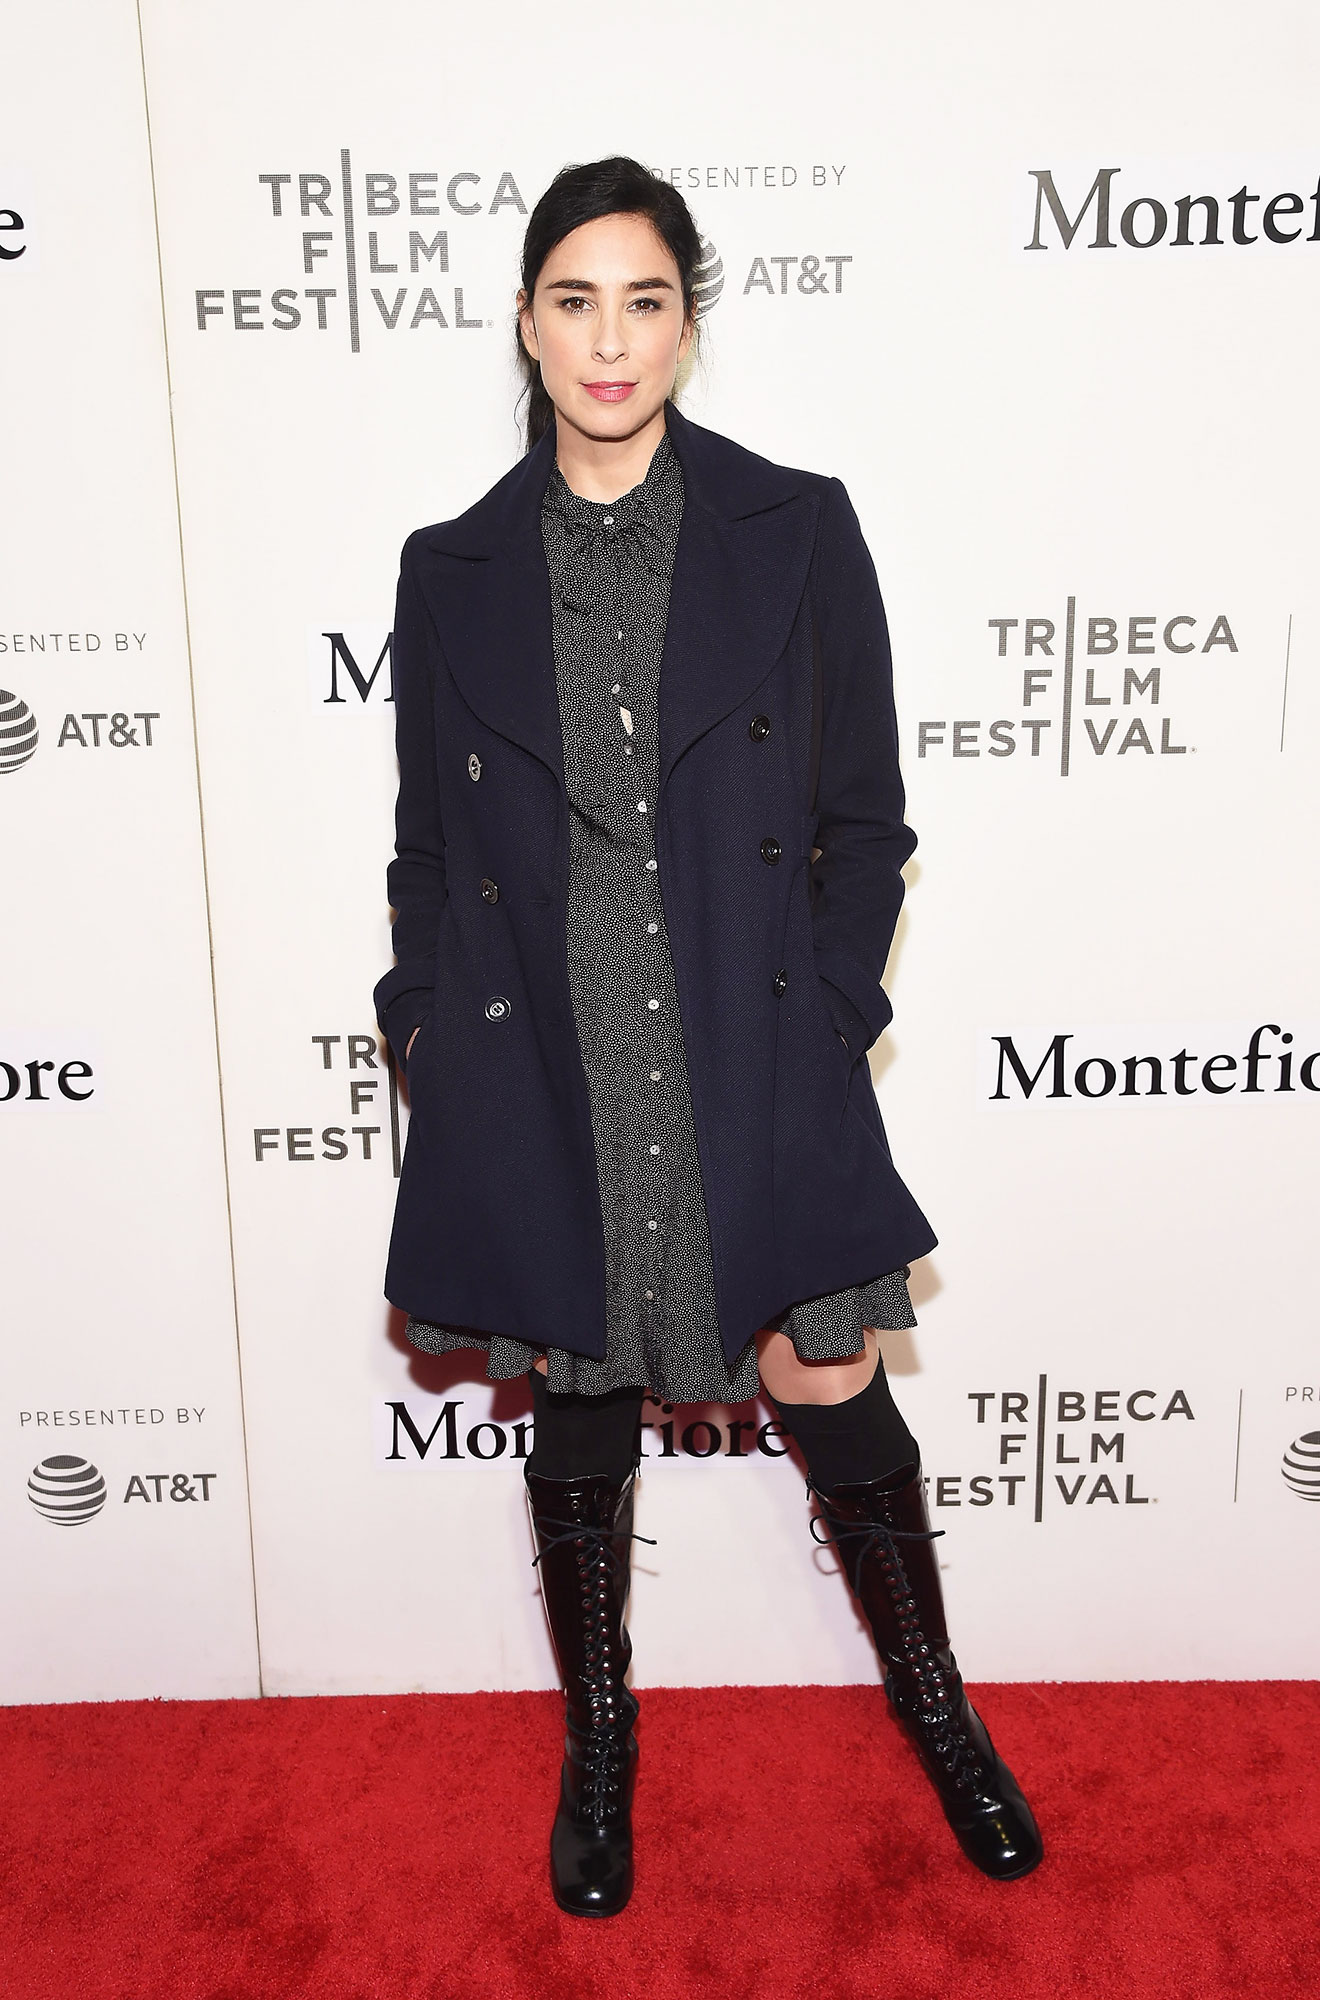 Sarah Silverman Stars up Their Style Game at Tribeca Film Festival - Keeping things cool and casual, the brunette beauty attended the Tribeca Talks panel on April 29, wearing a navy trench coat over her peasant dress and accessorizing with her classic lace-up boots.